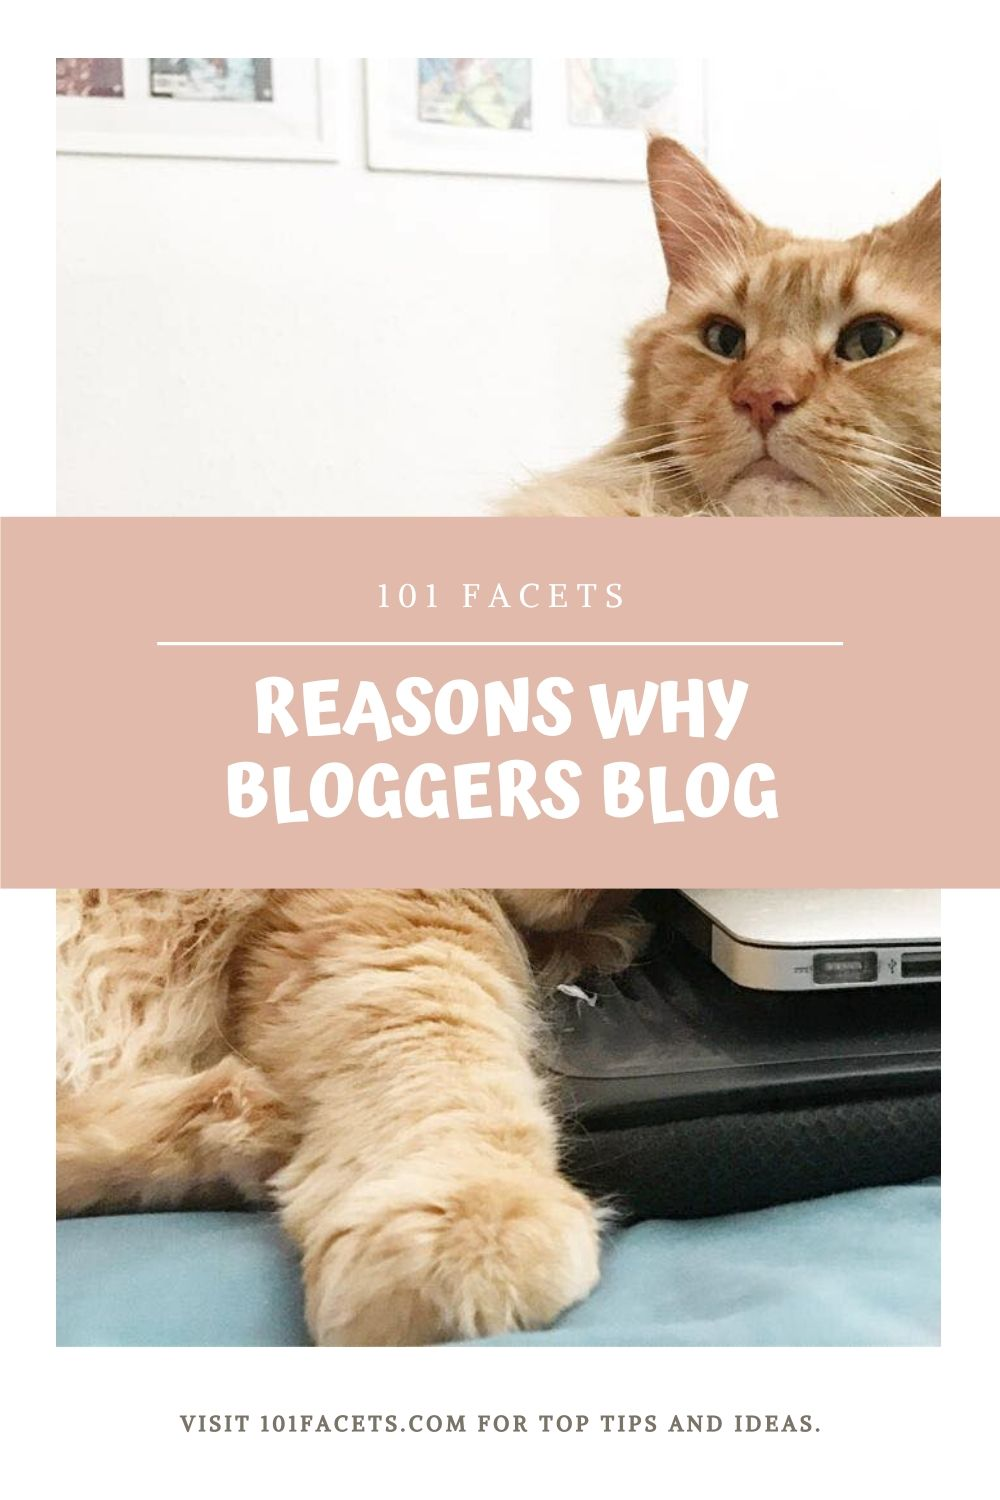 10 Reasons Why Bloggers Blog 2